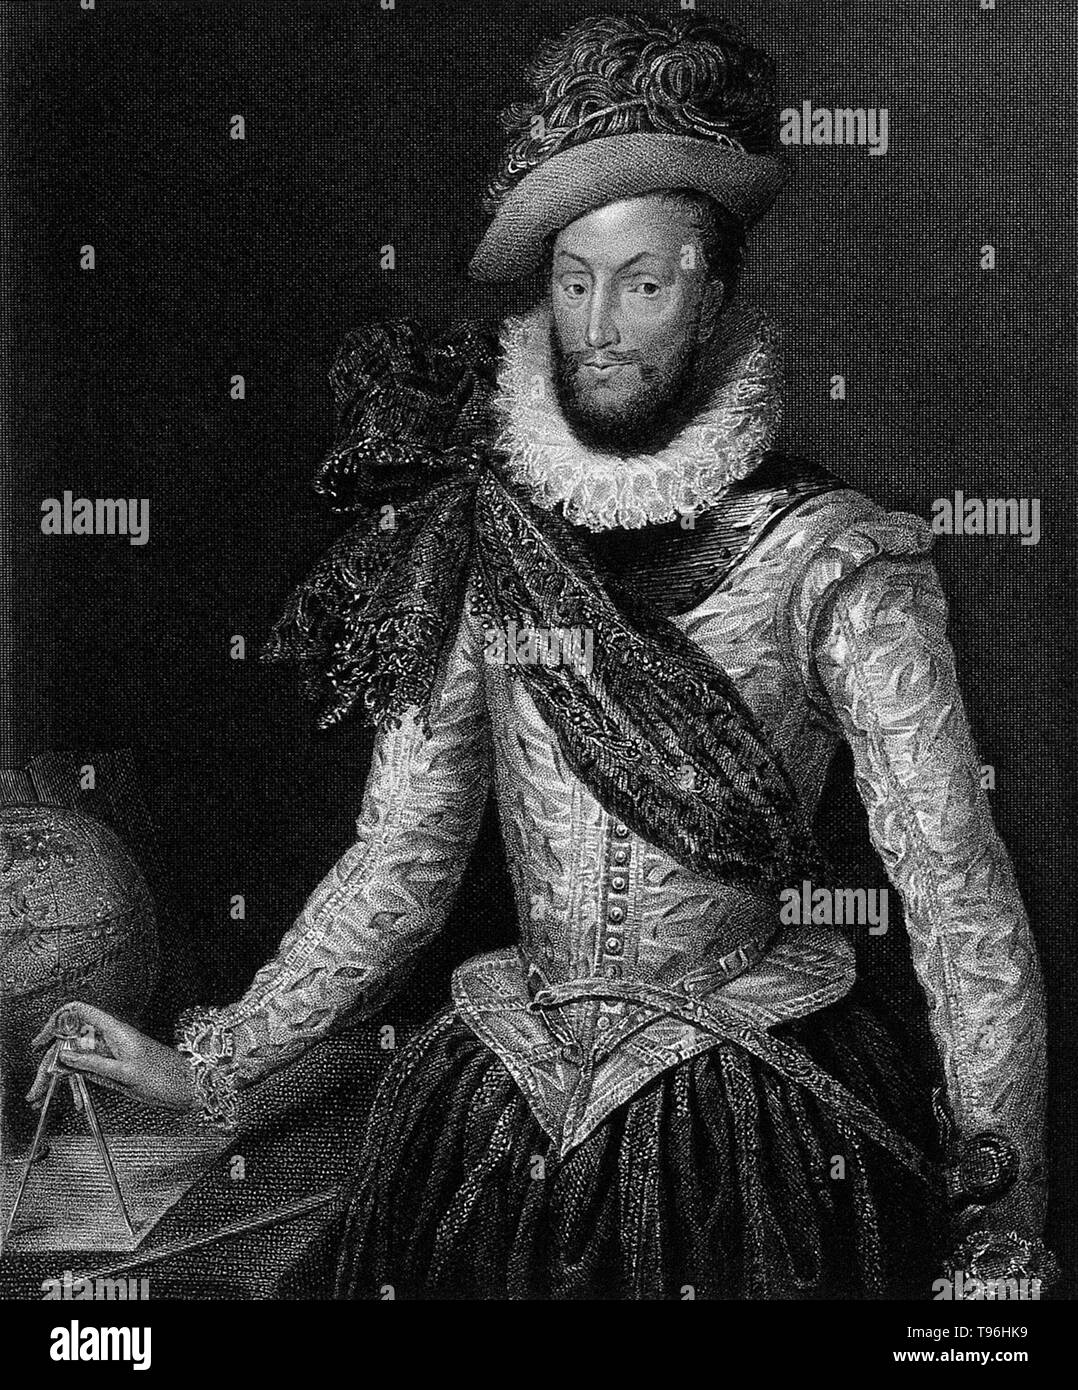 Walter Raleigh (1554 - October 29,1618) was an English aristocrat, writer, poet, soldier, courtier, spy, and explorer. He is most remembered for popularizing tobacco in England. His plan in 1584 for colonization in North America ended in failure at Roanoke Island, but paved the way for subsequent colonies. Though a favorite of Queen Elizabeth I he secretly married Elizabeth Throckmorton, one of the Queen's ladies-in-waiting in 1591 without the Queen's permission and he and his wife were sent to the Tower of London. In 1594 Raleigh heard of a ''City of Gold'' in South America and sailed to find - Stock Image